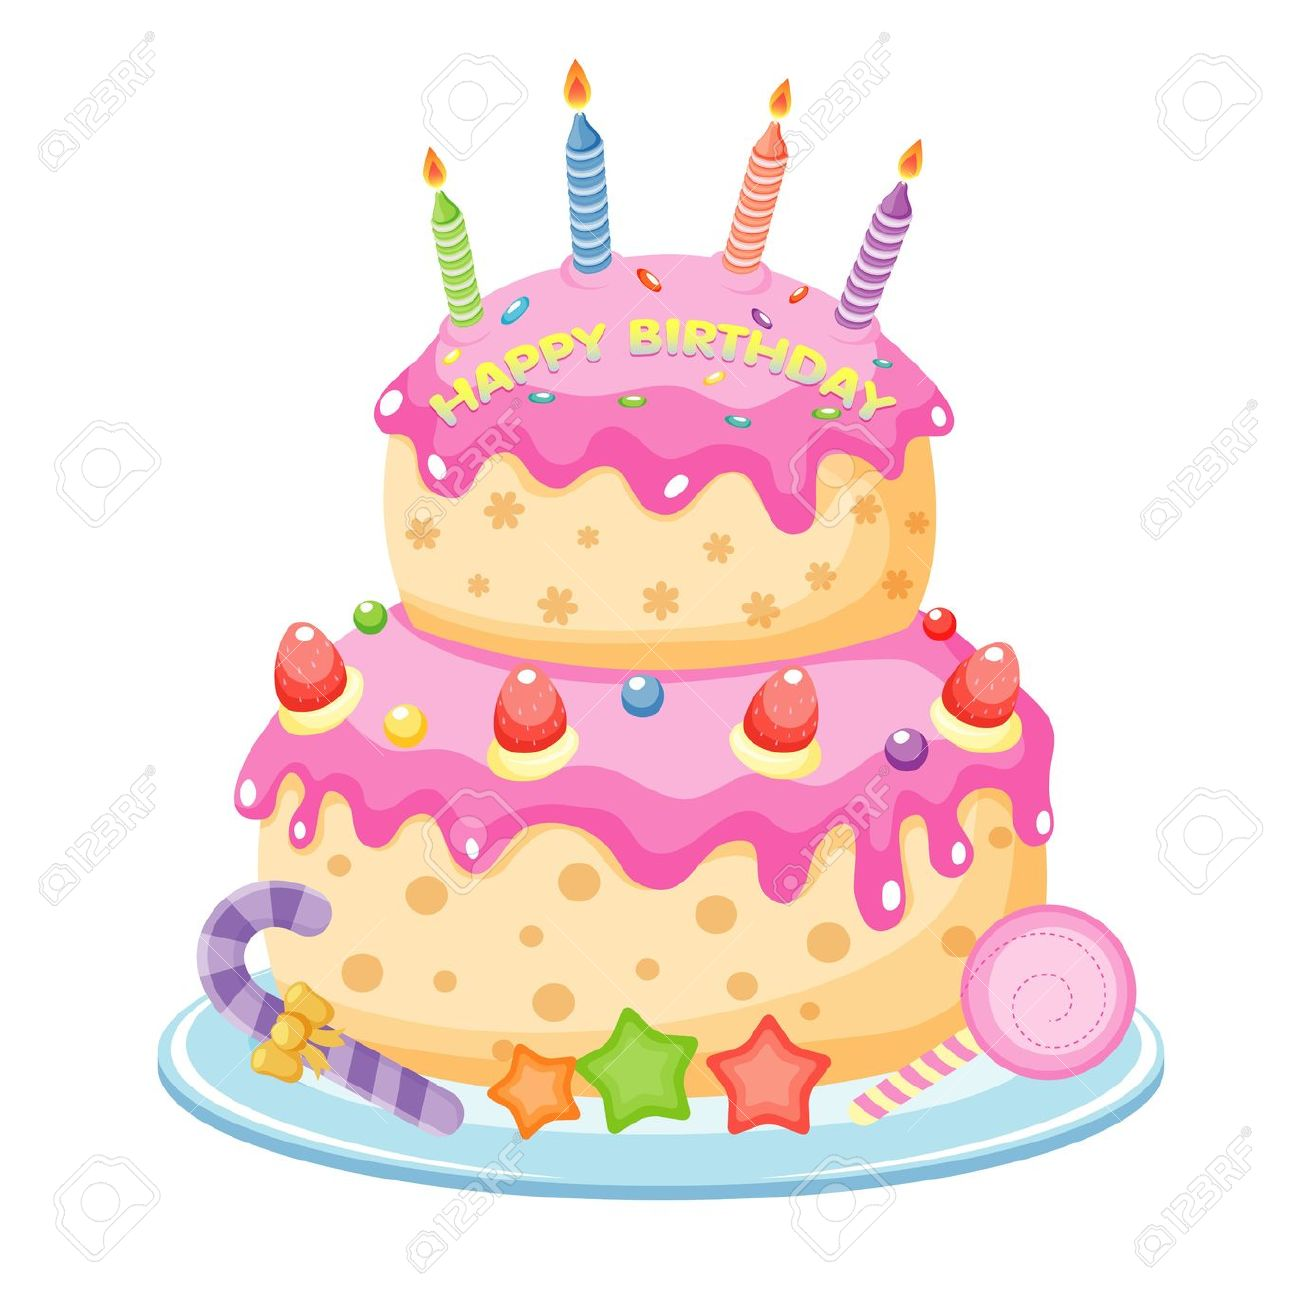 Birthday cake cartoon clipart jpg black and white Birthday Cake Royalty Free Cliparts, Vectors, And Stock ... jpg black and white